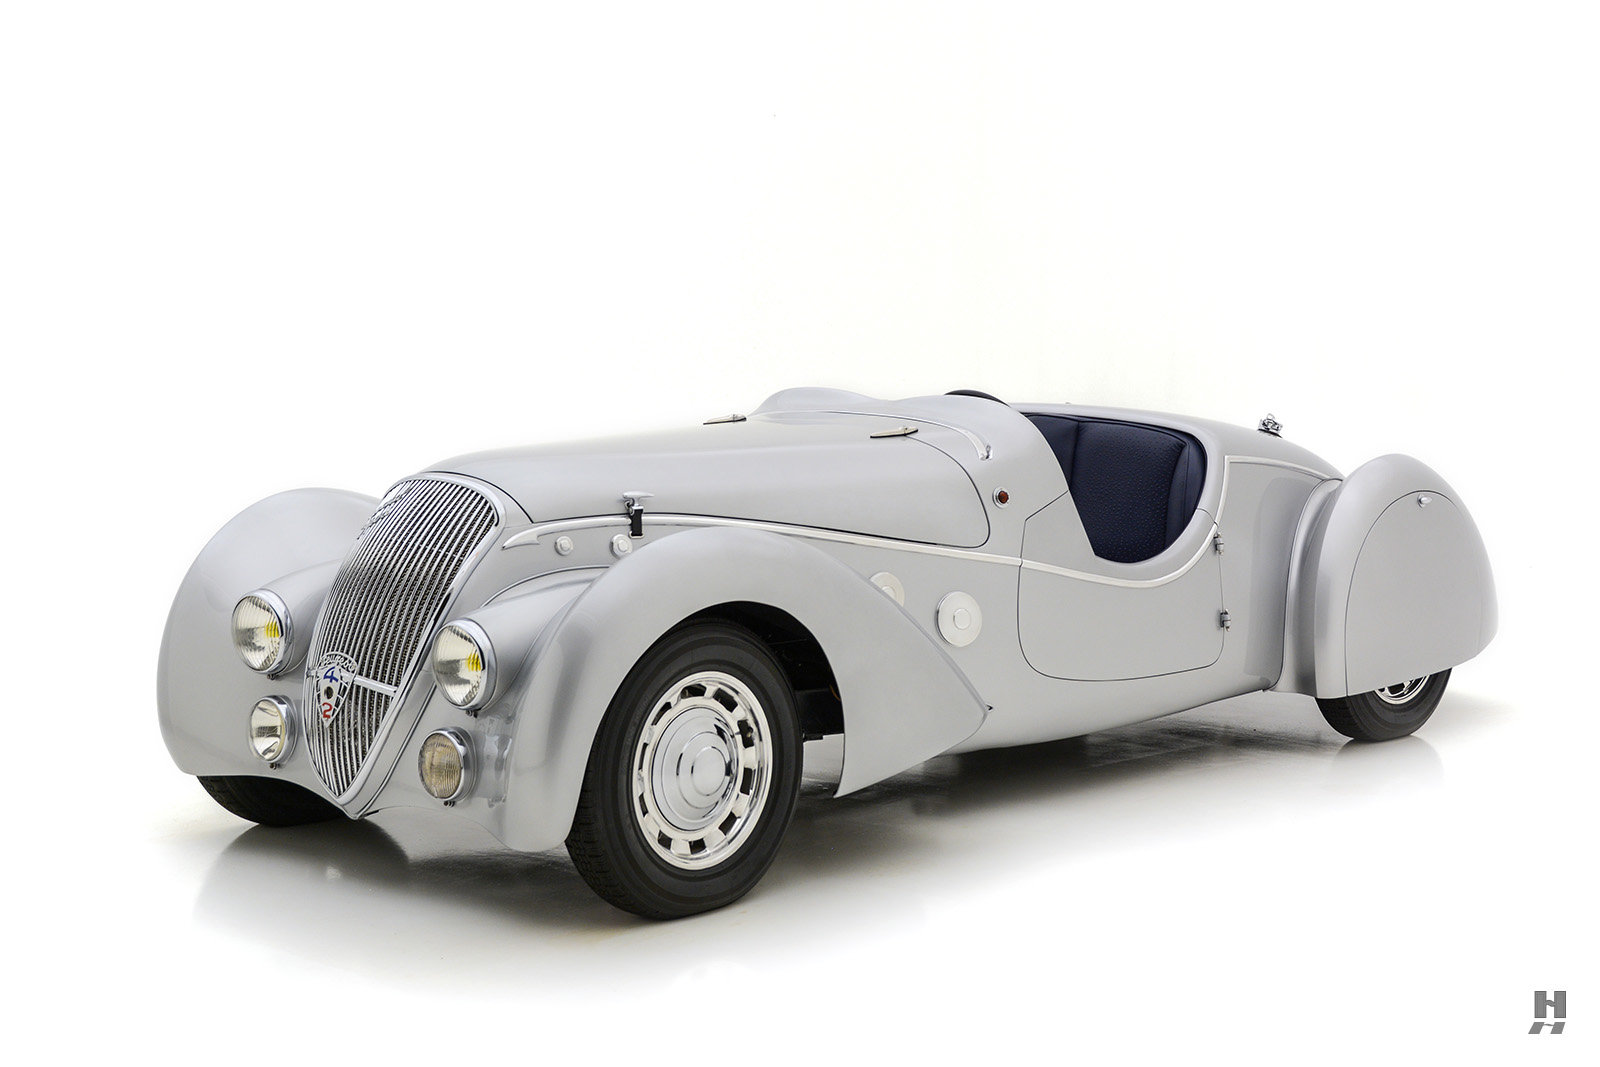 1938 PEUGEOT DARL'MAT For Sale (picture 1 of 6)